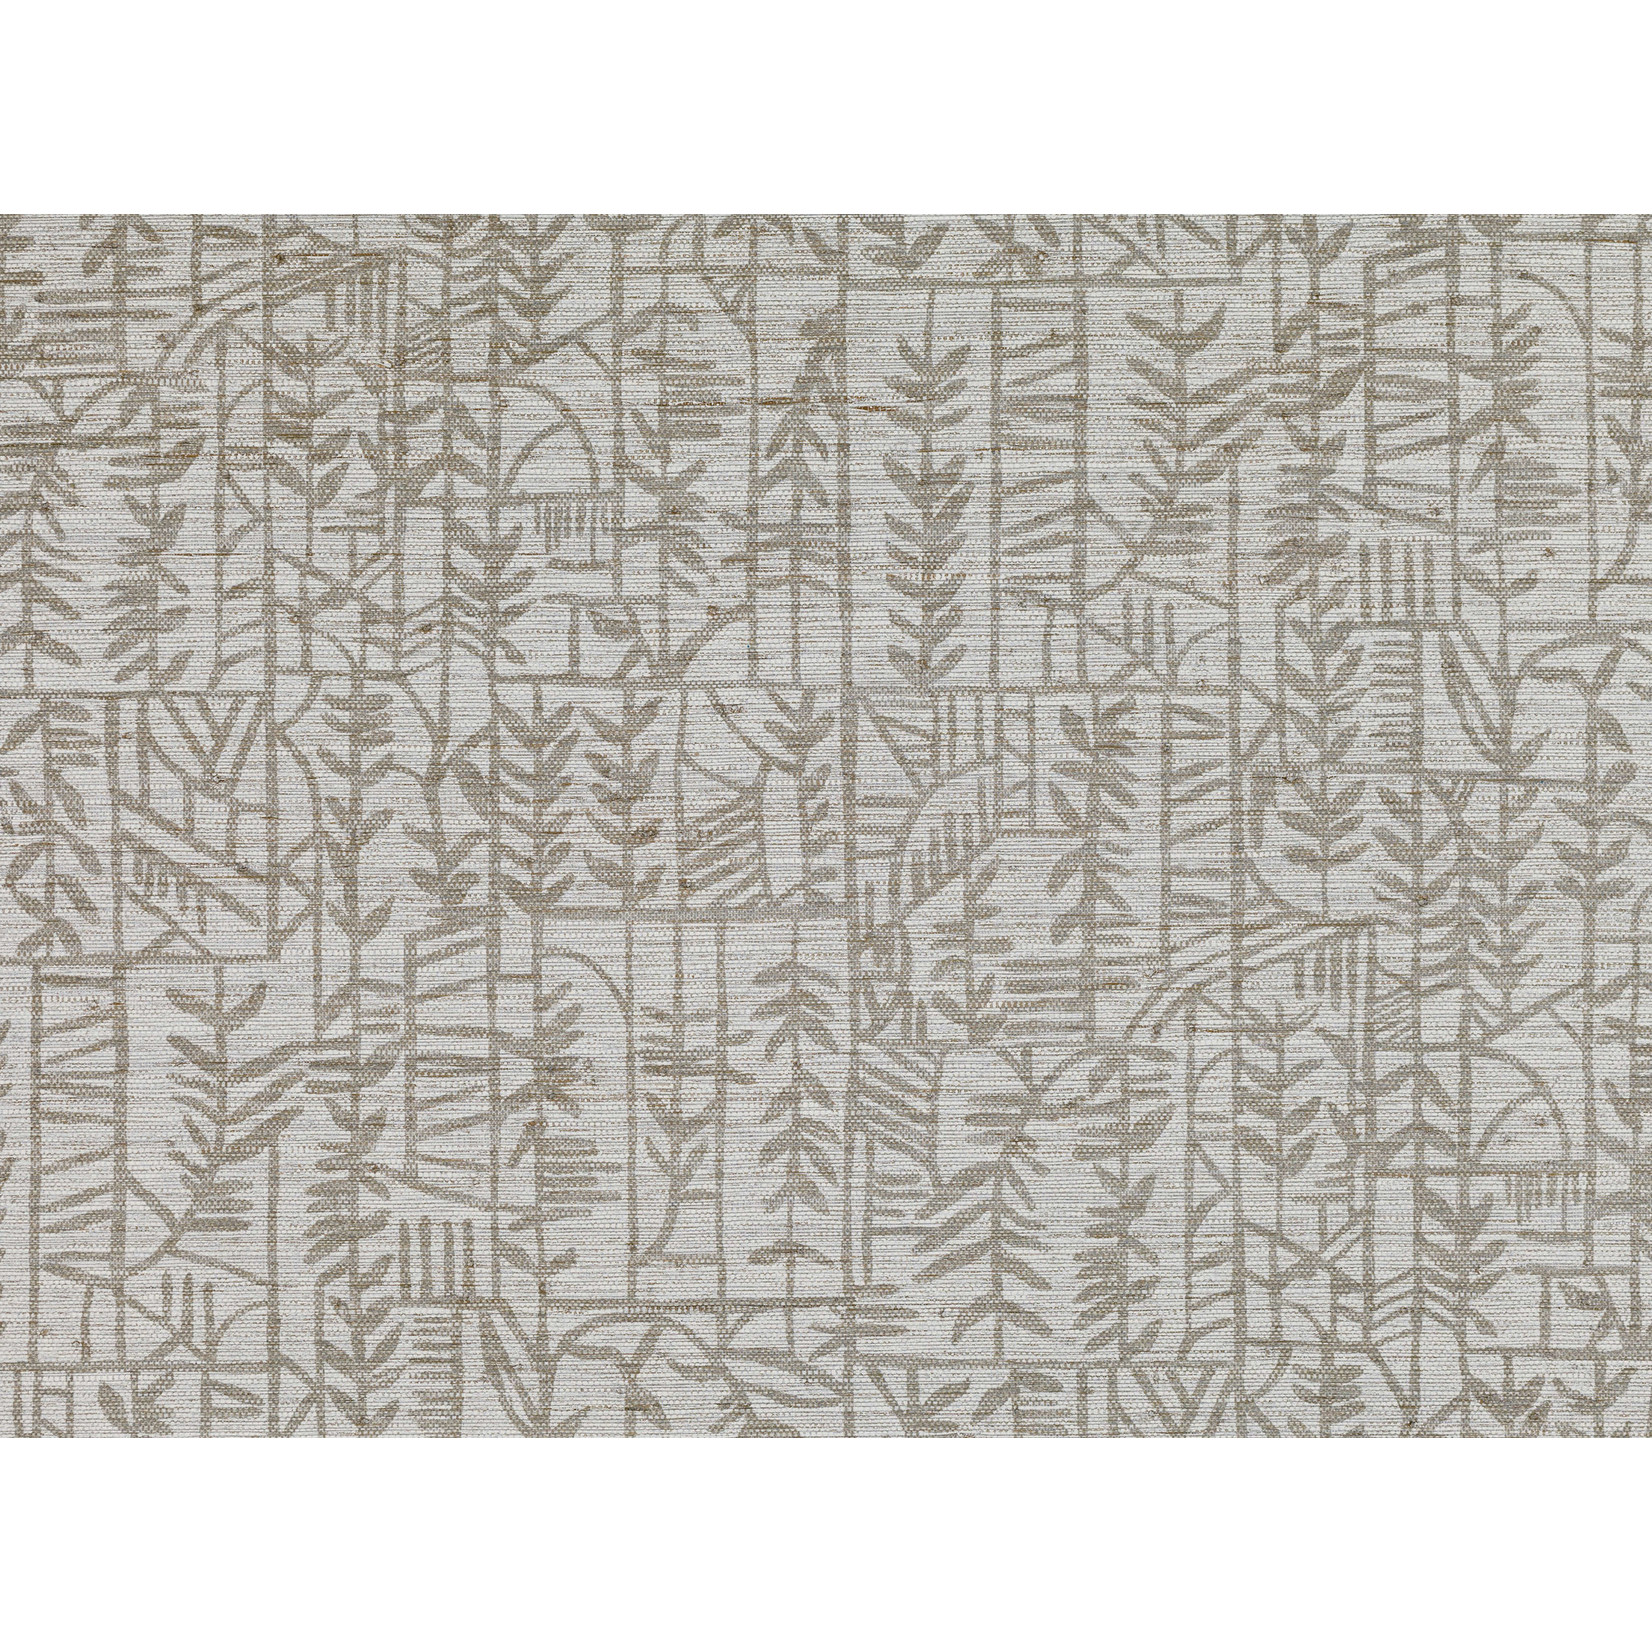 Mark Alexander Collage Handcrafted Wallcoverings | Akata Sepia